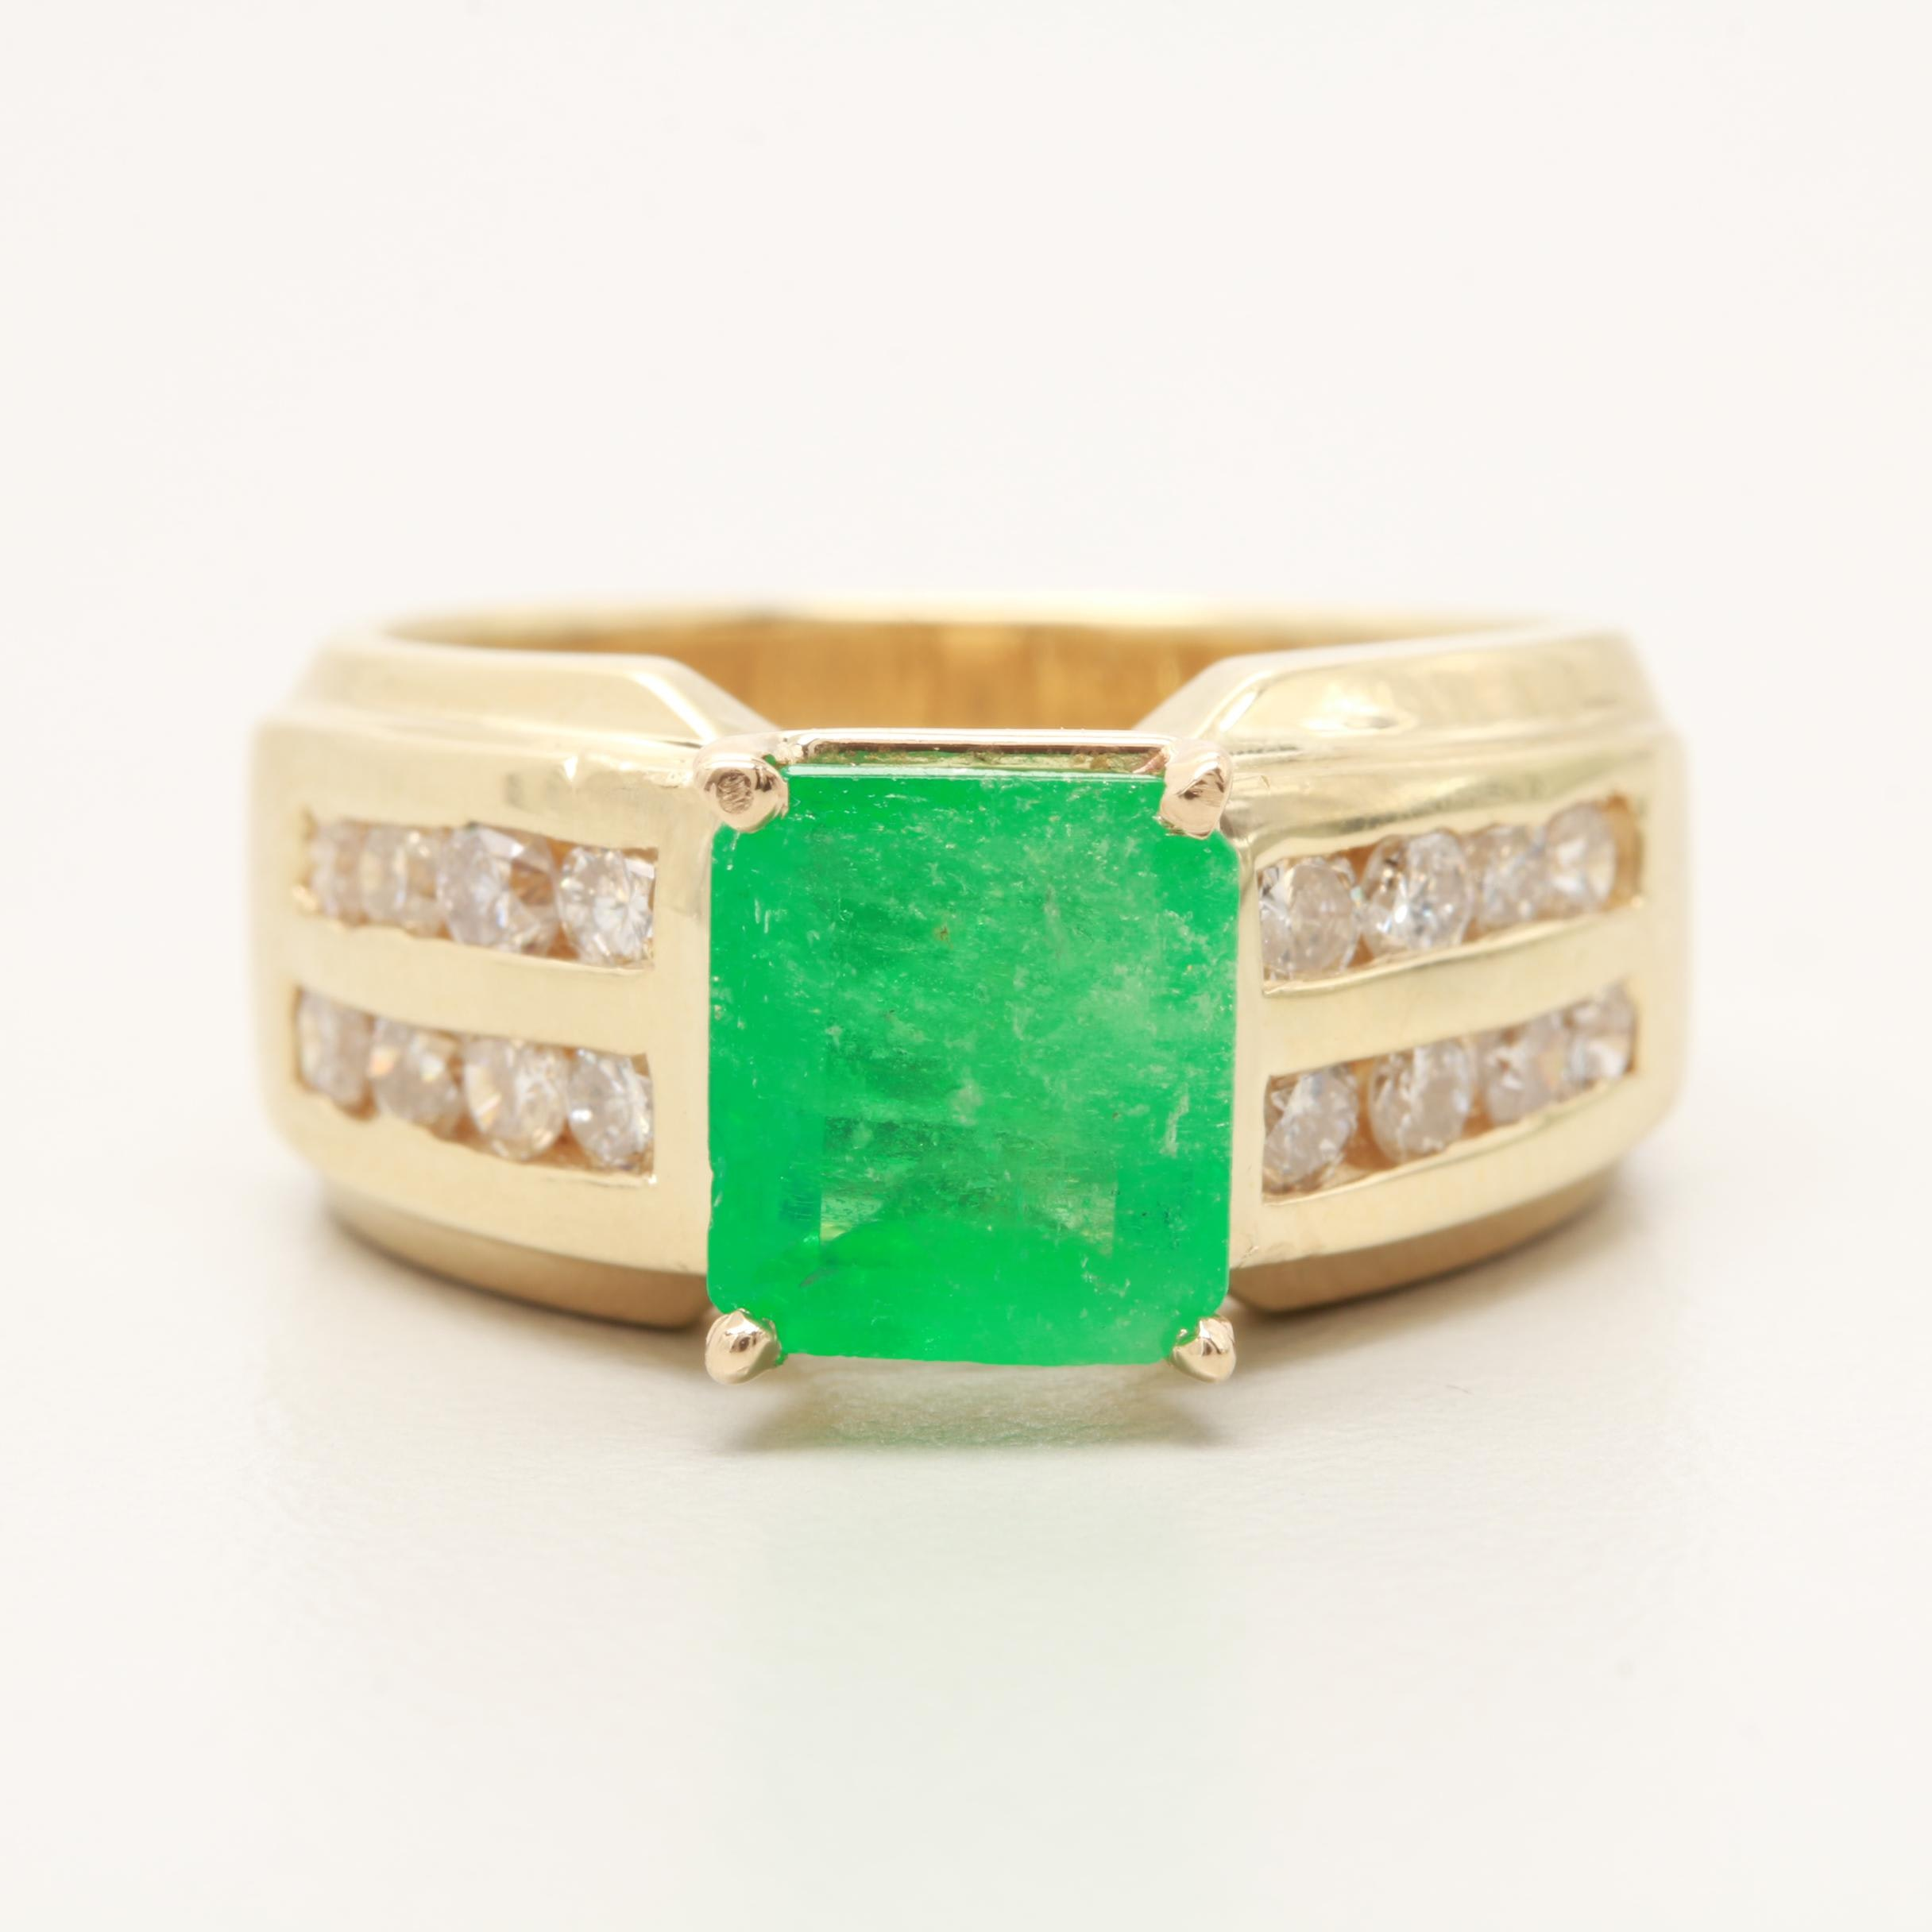 14K Yellow Gold 1.46 CT Emerald and Diamond Ring